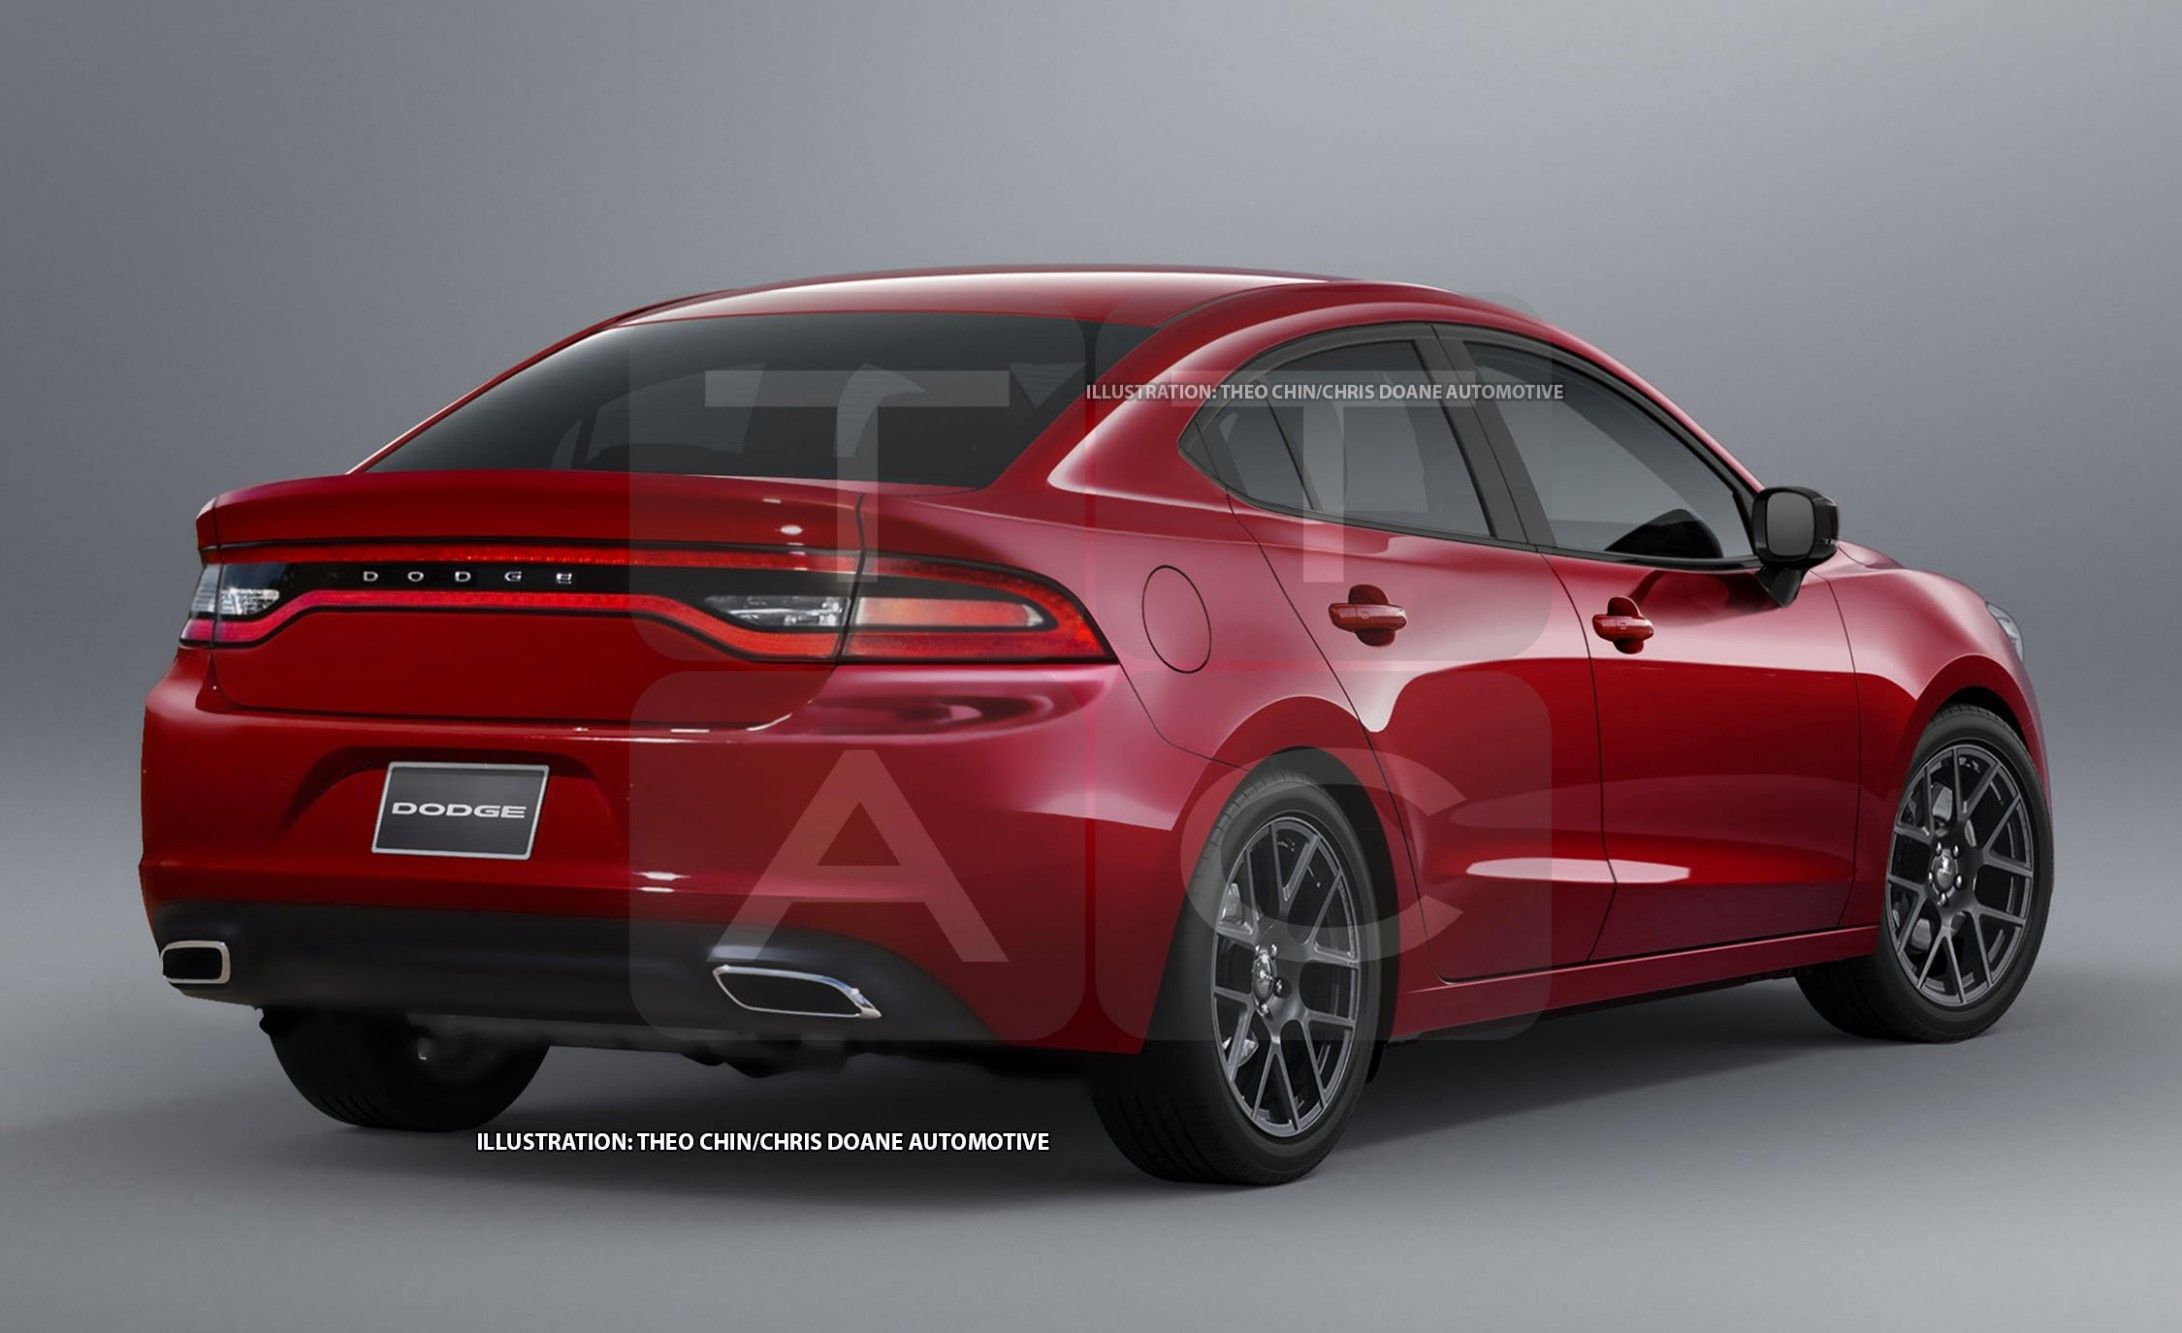 2021 Dodge Dart Price, Design and Review